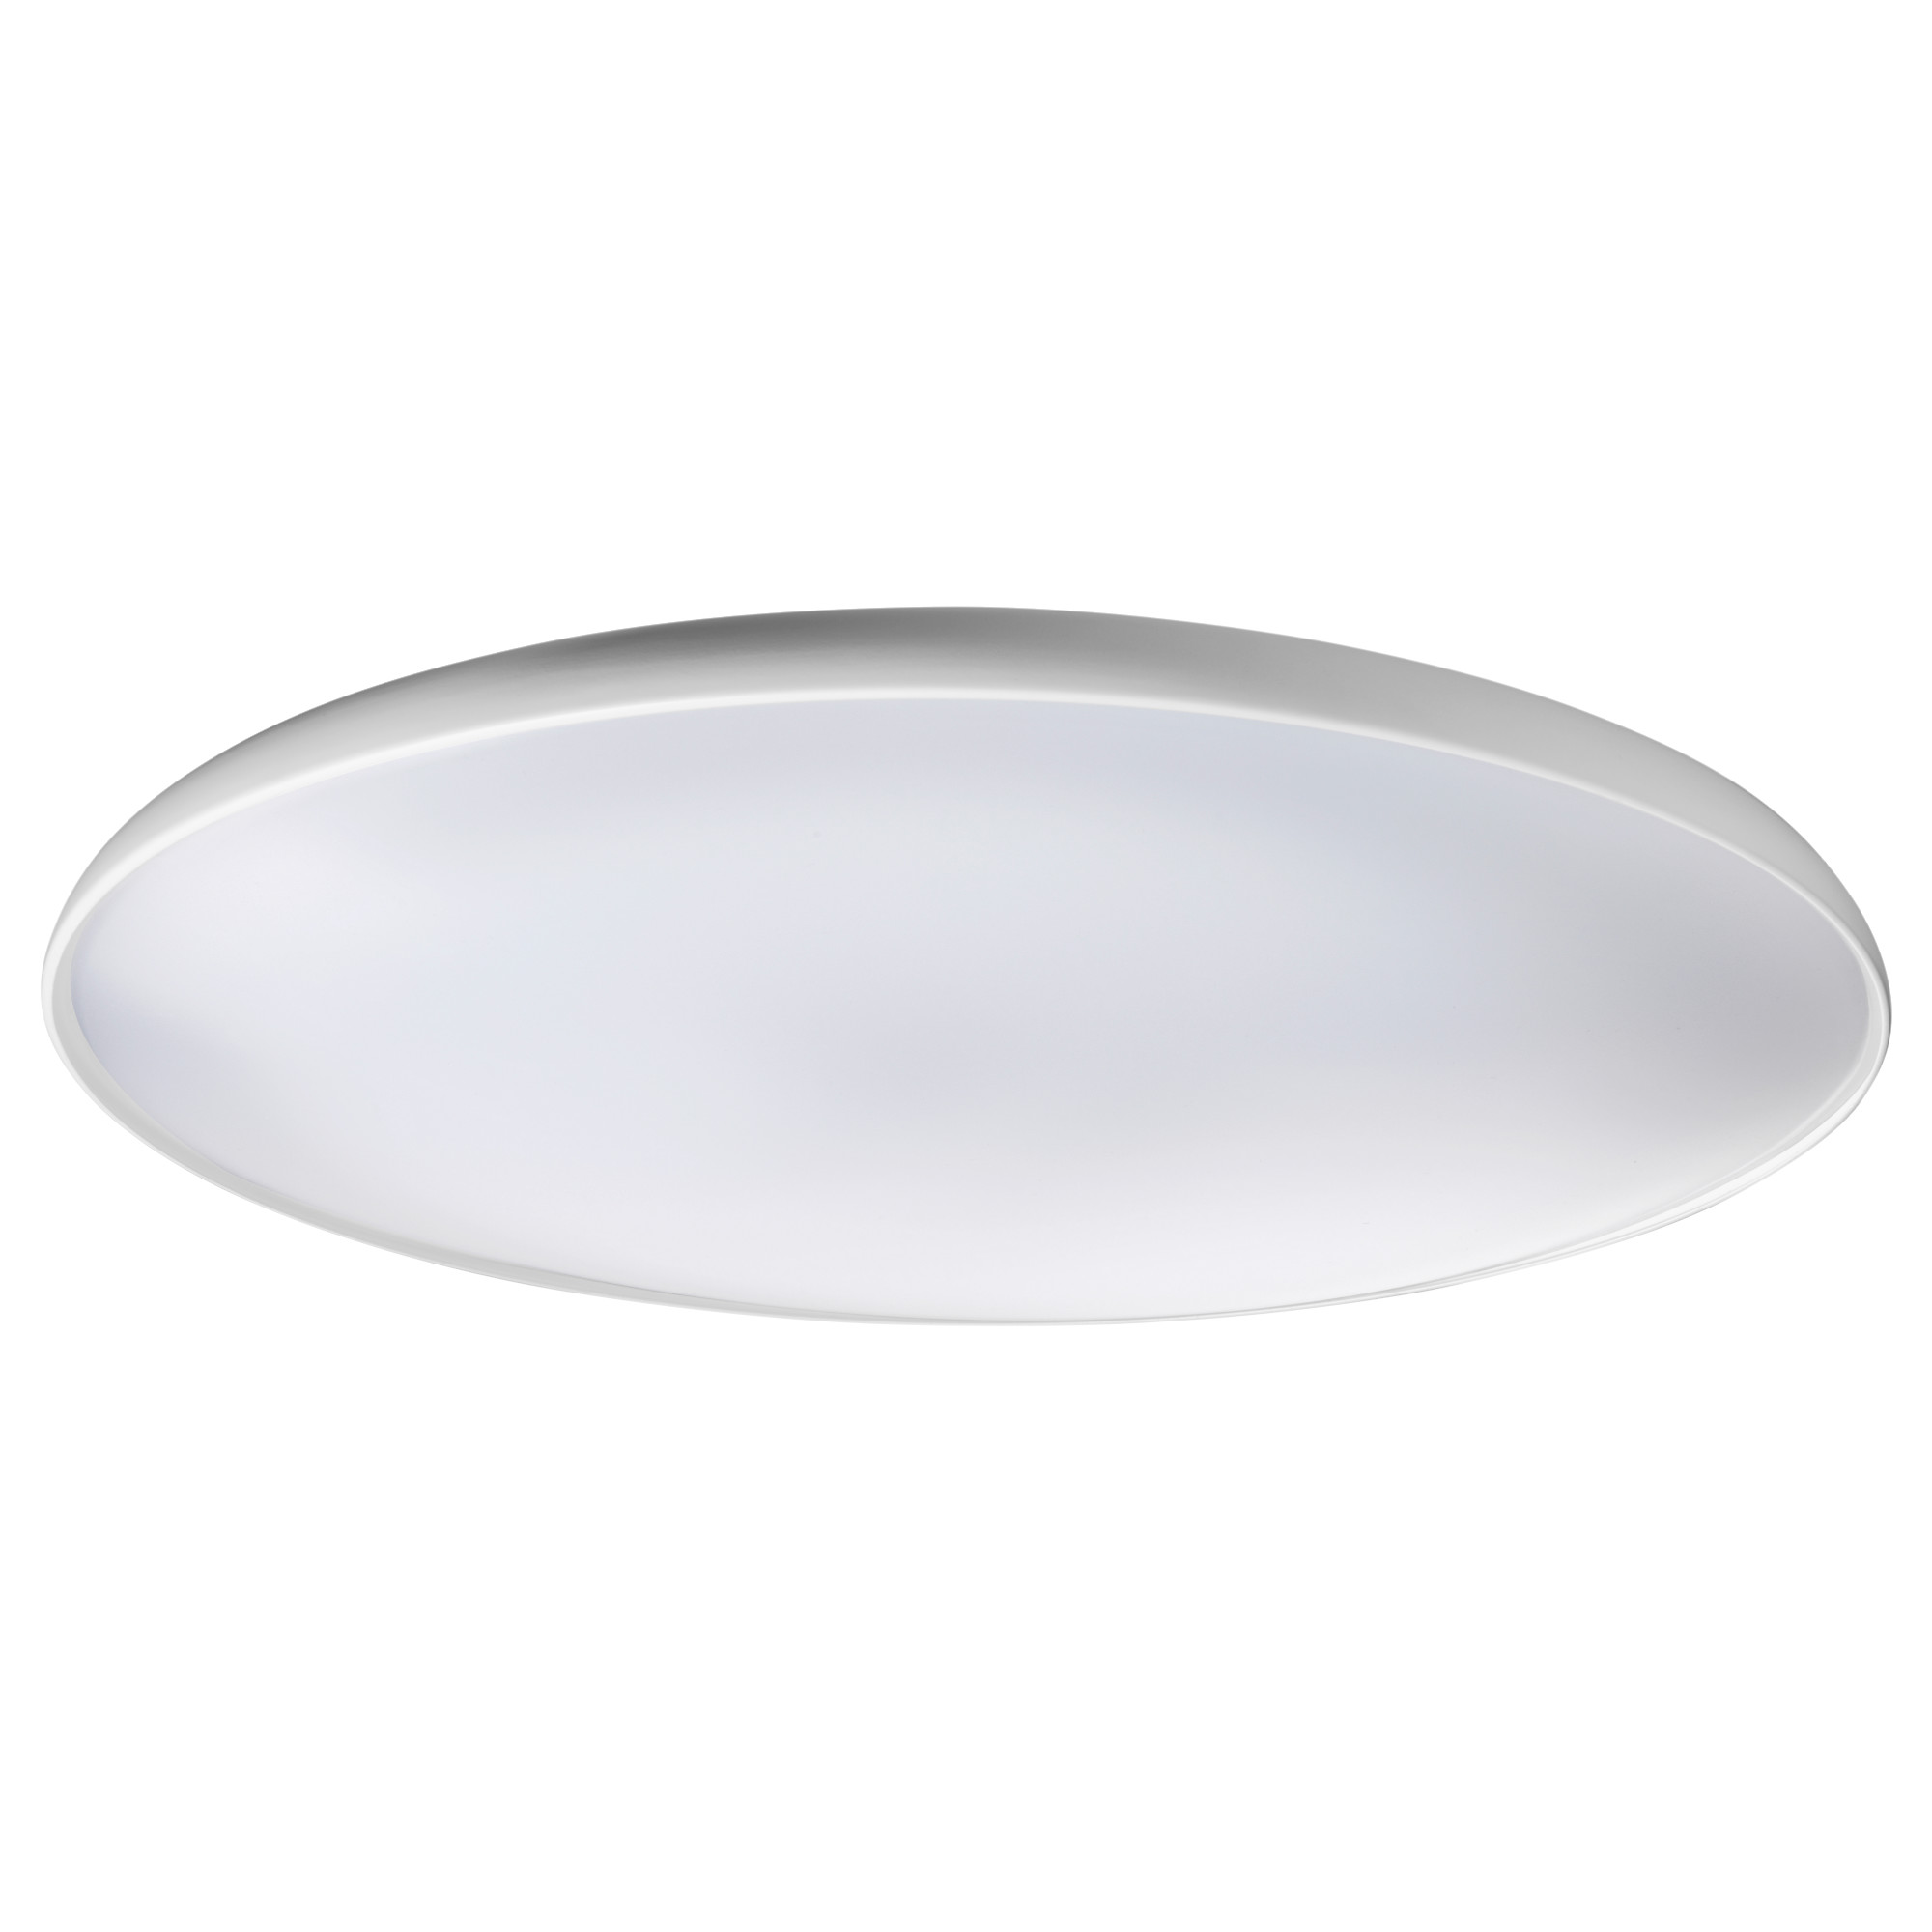 ceiling lamp inter ikea systems b.v. 2011 - 2017 | privacy policy HNWDZMM